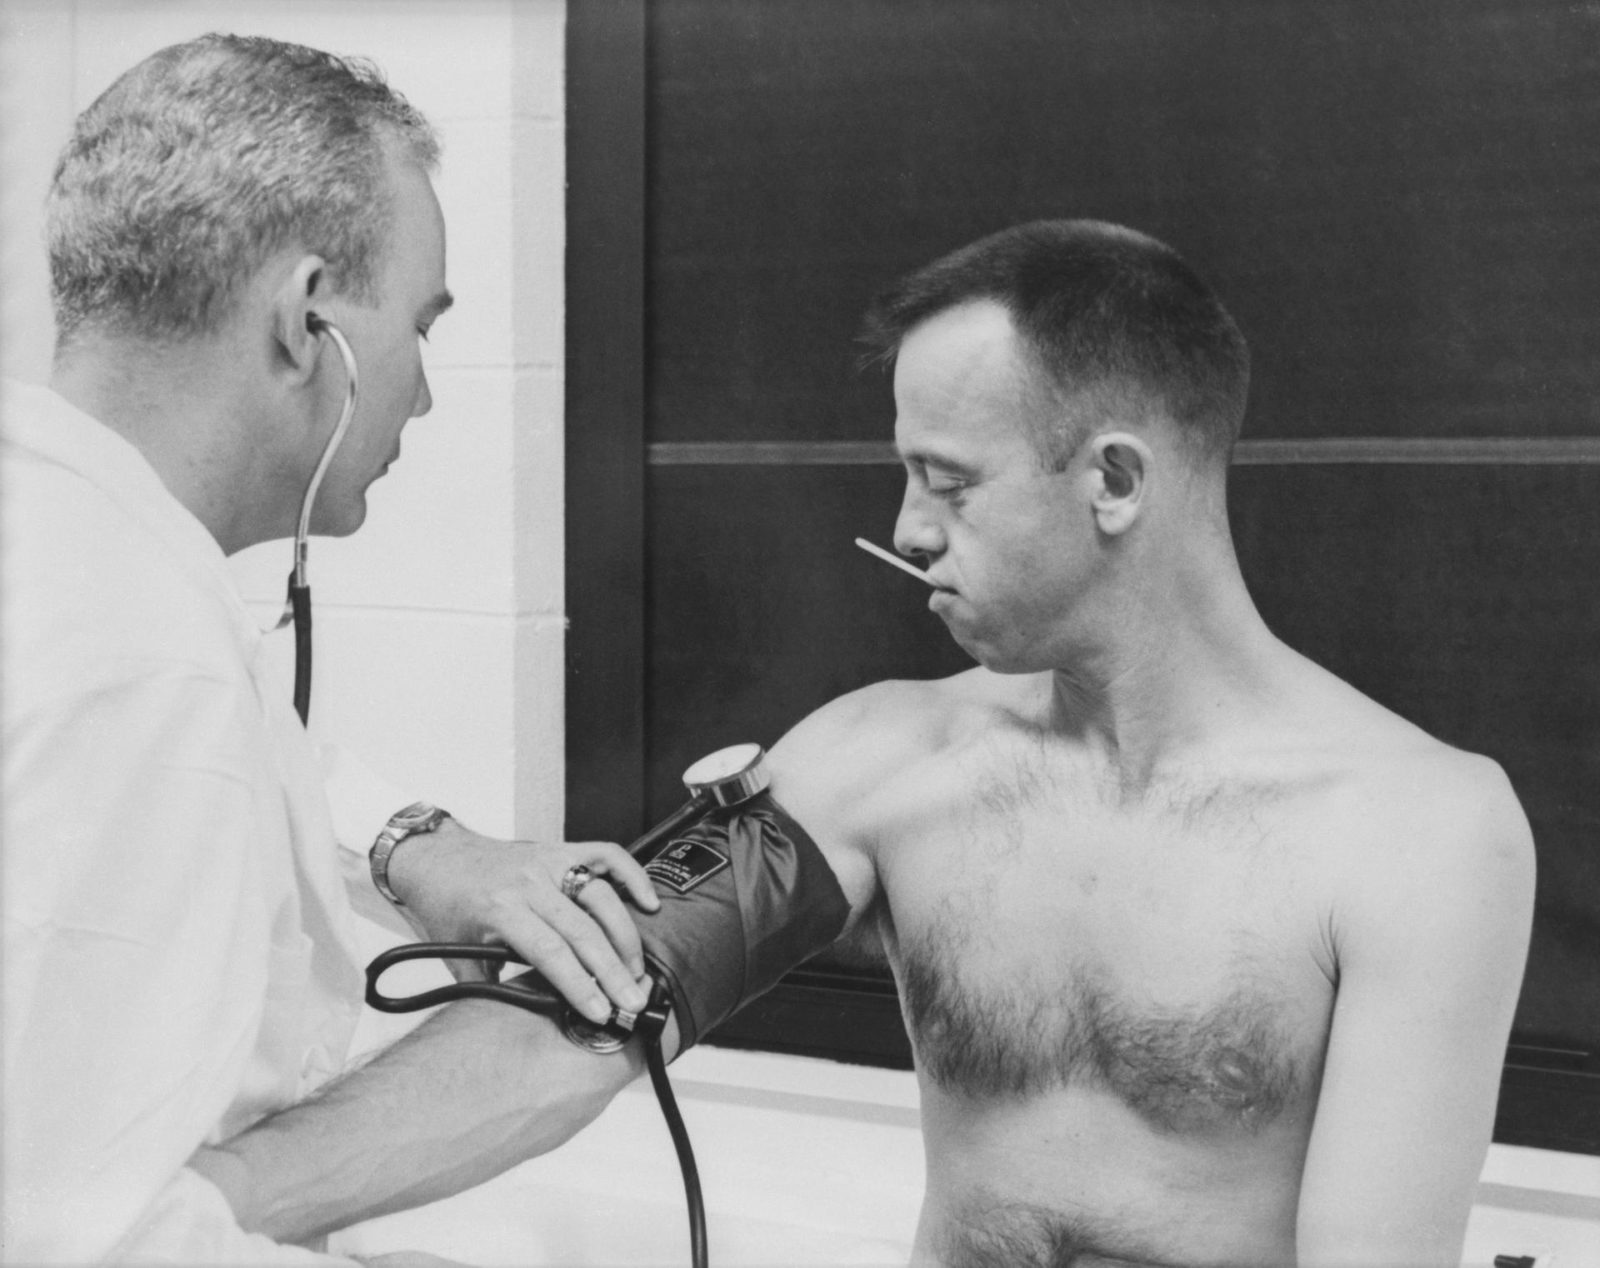 Astronaut Alan B. Shepard has his blood pressure and temperature checked